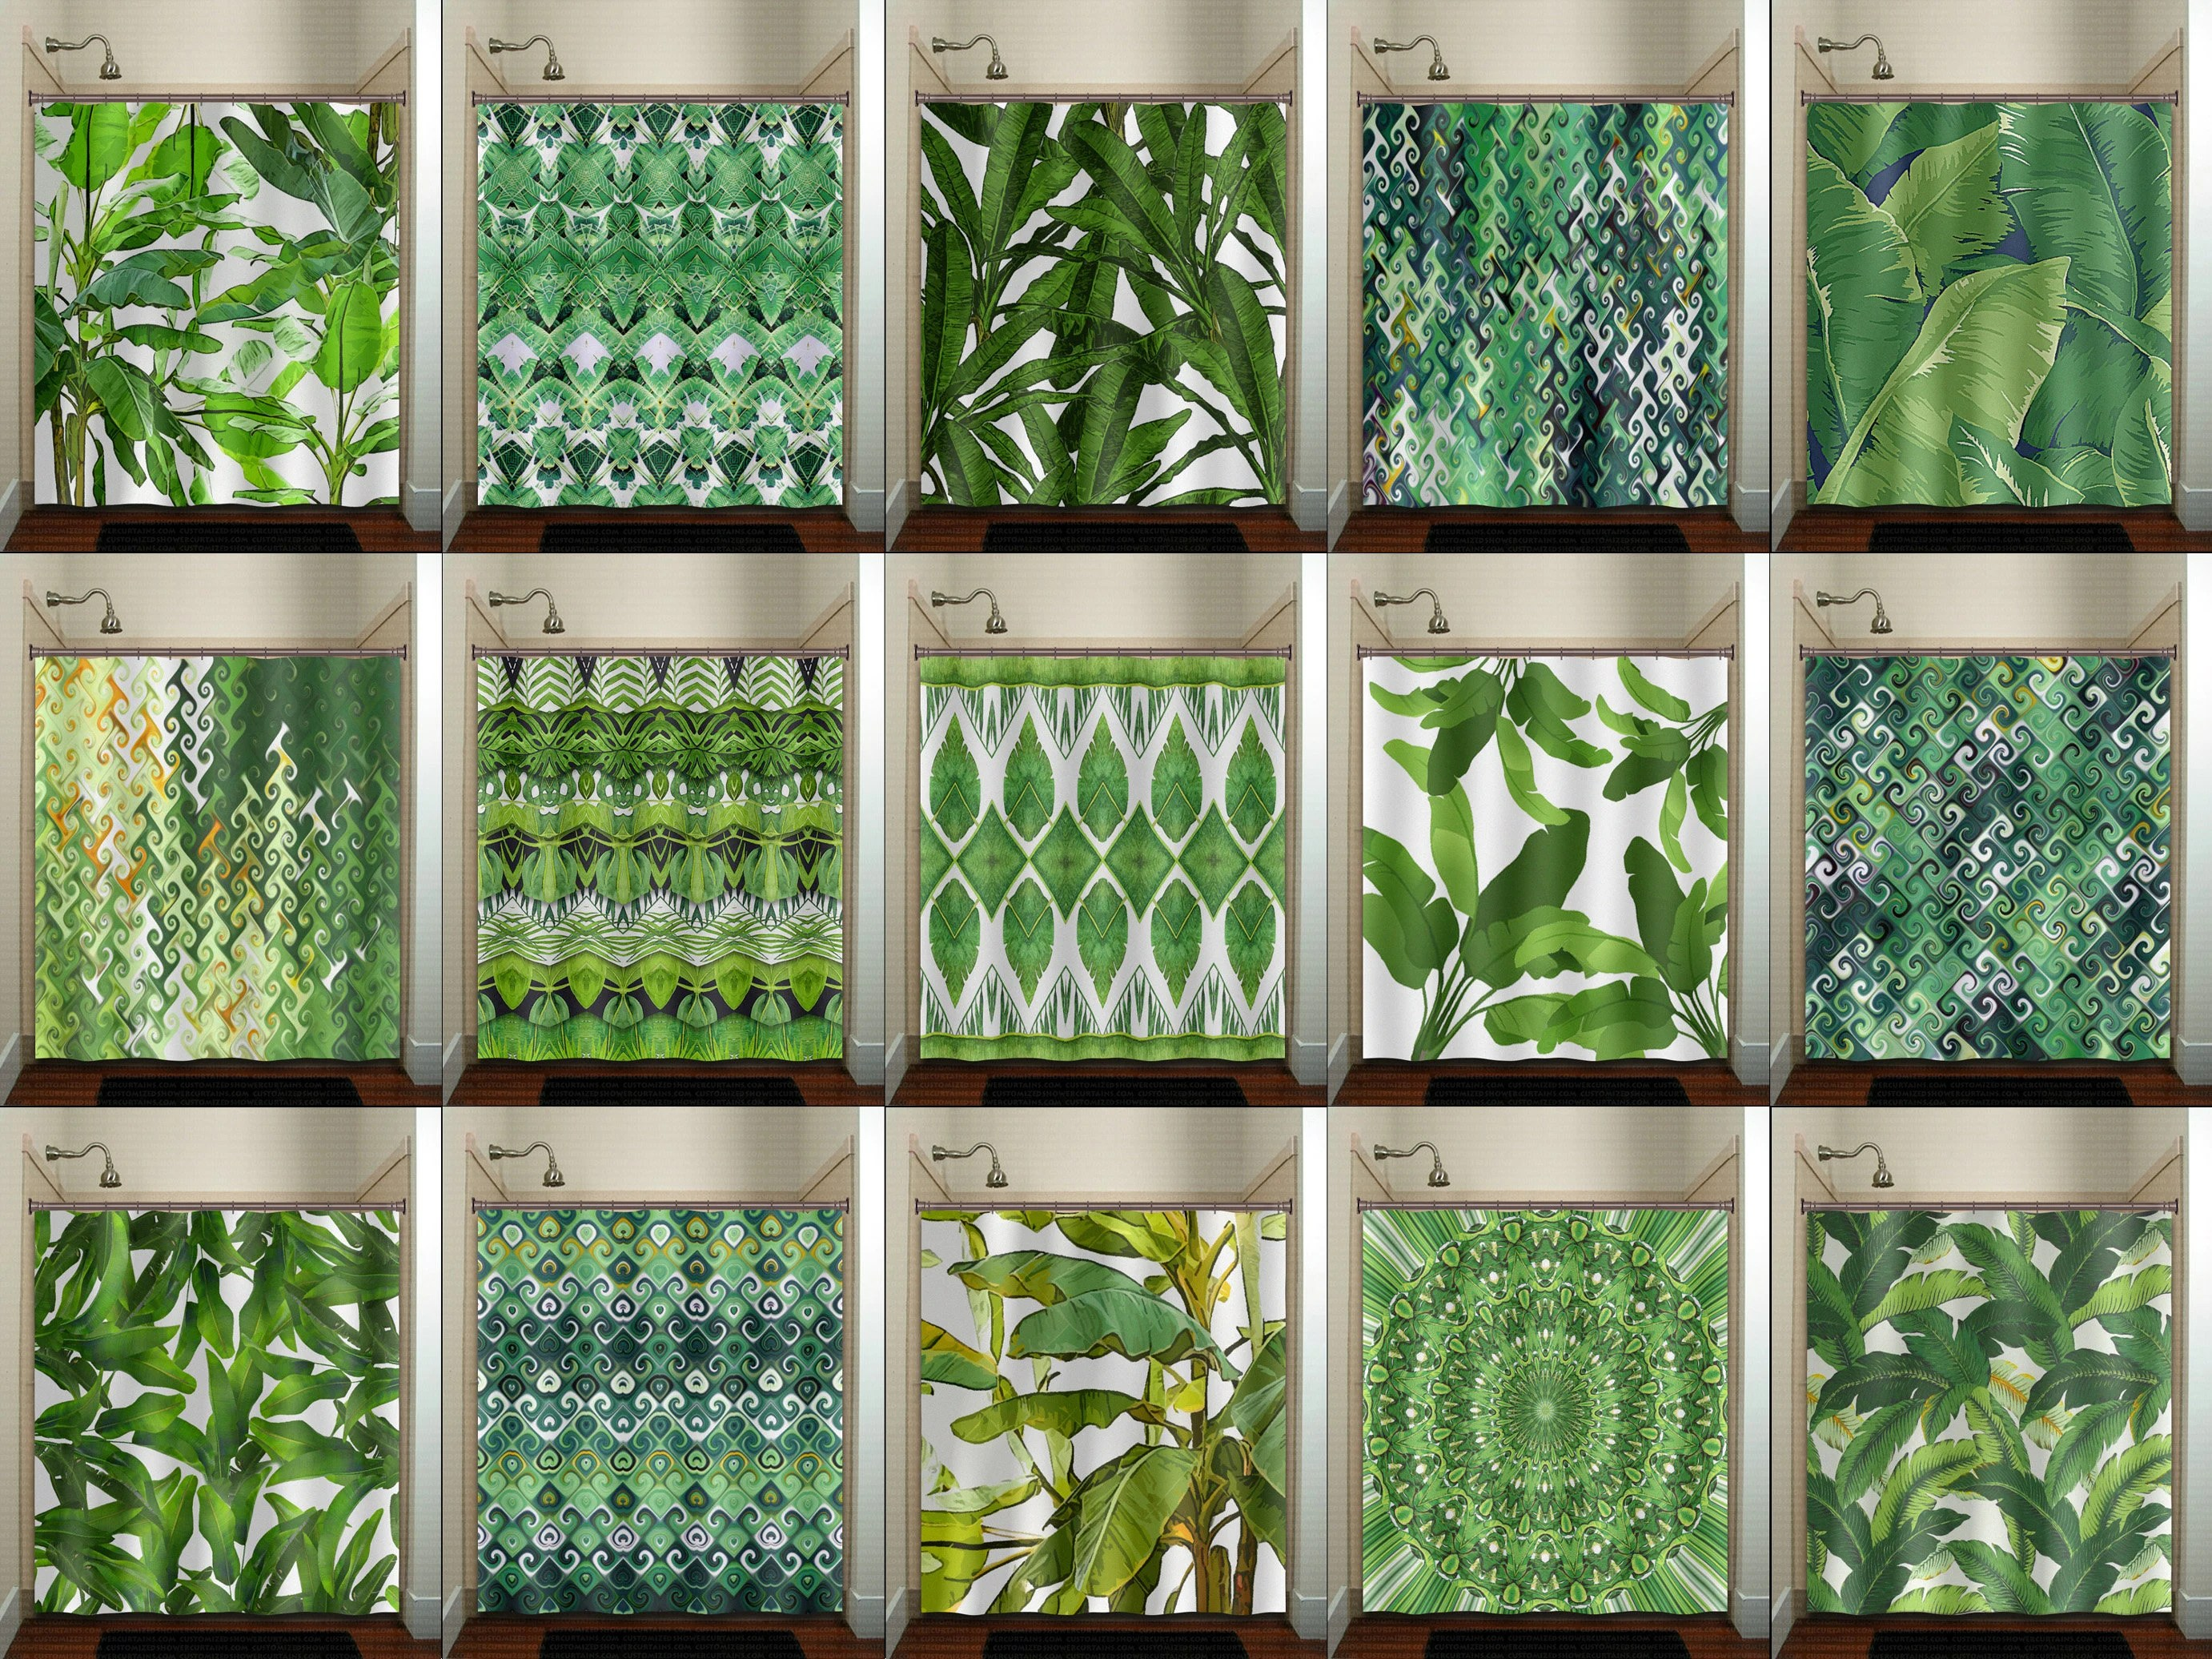 Banana Leaf Shower Curtain Banana Leaf Curtain Panel Extra Long Shower Curtain 84 Inch Fabric Custom Size 96 Inch Tropical Green Bathroom Decor